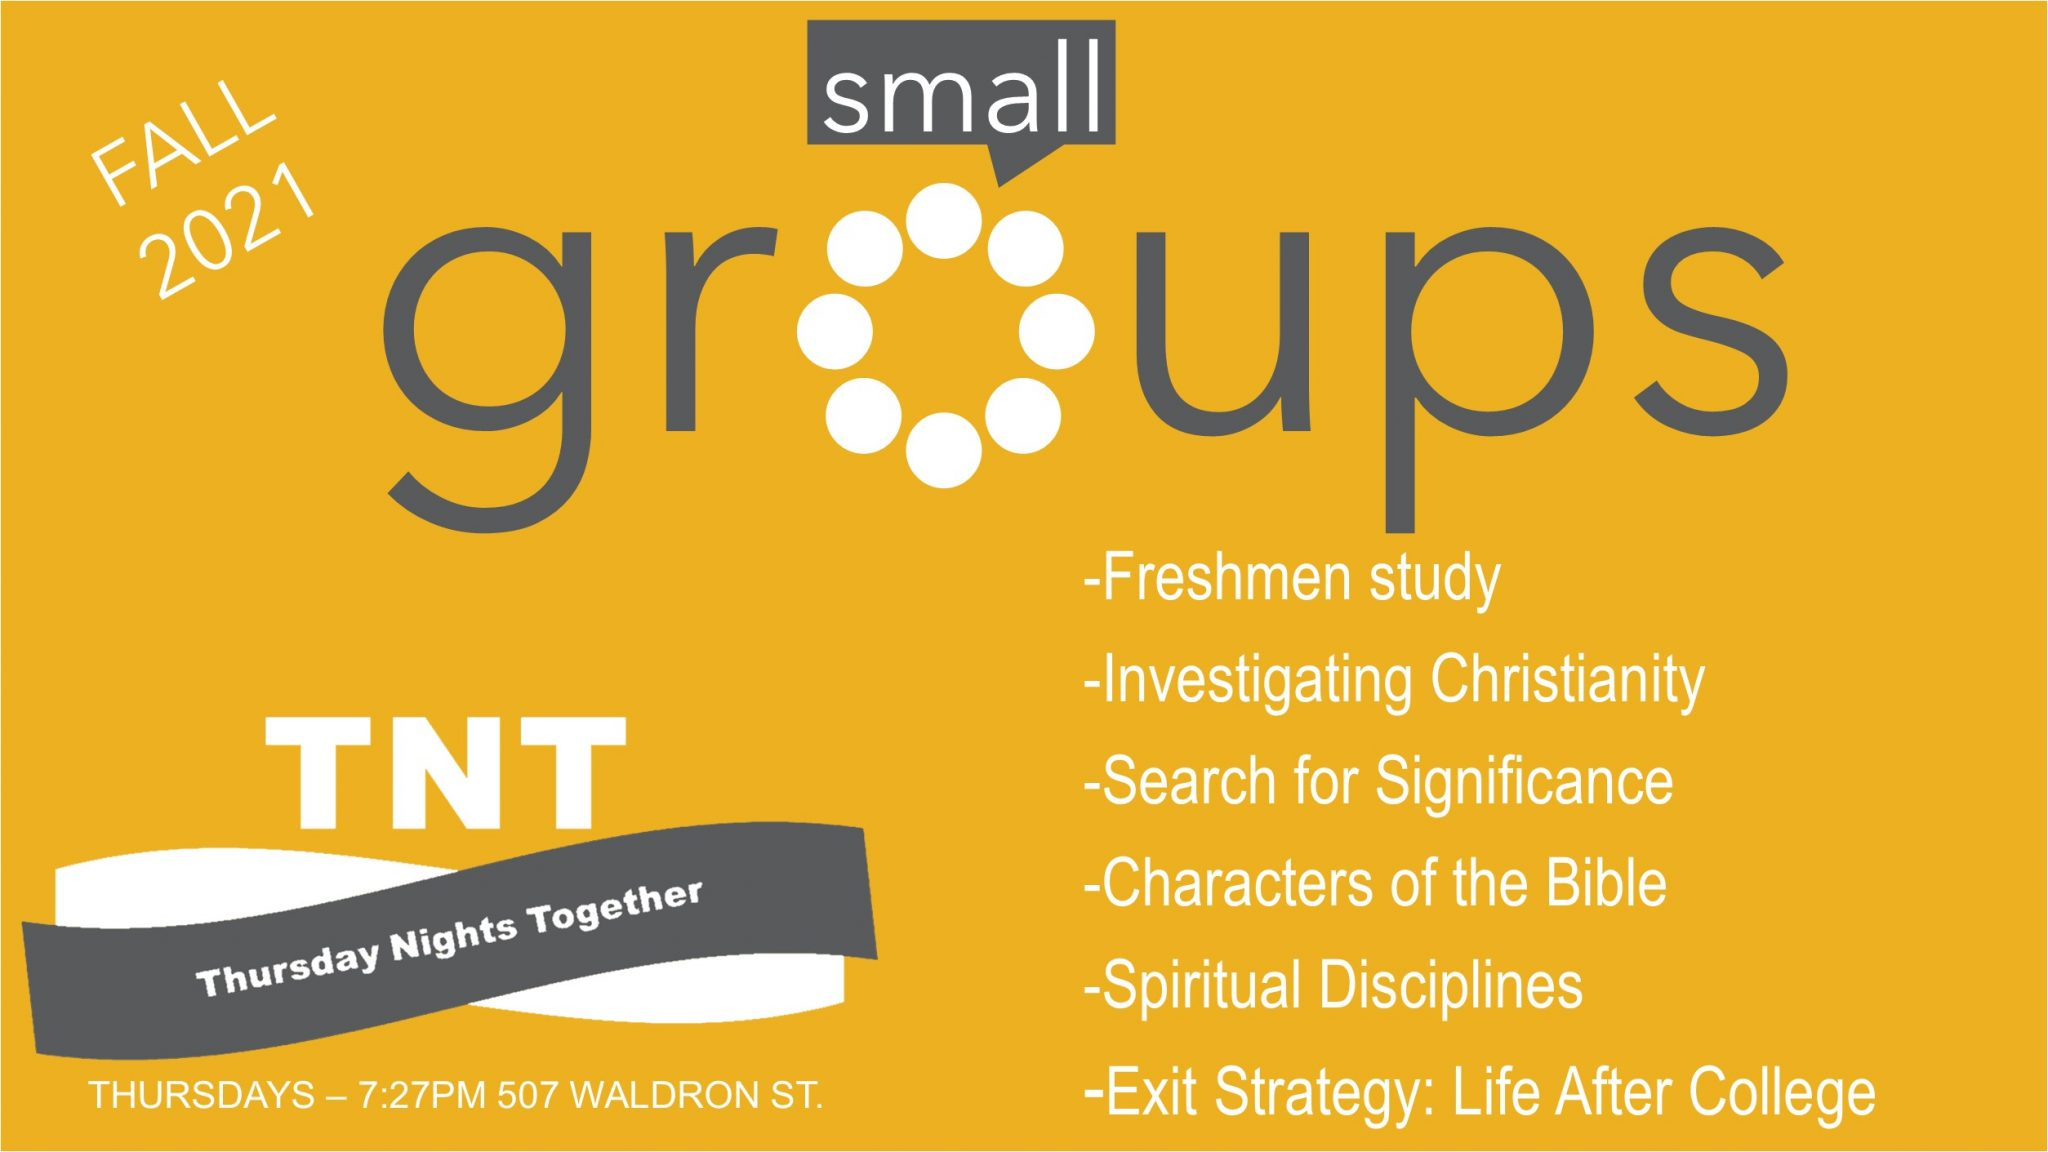 small groups fl21